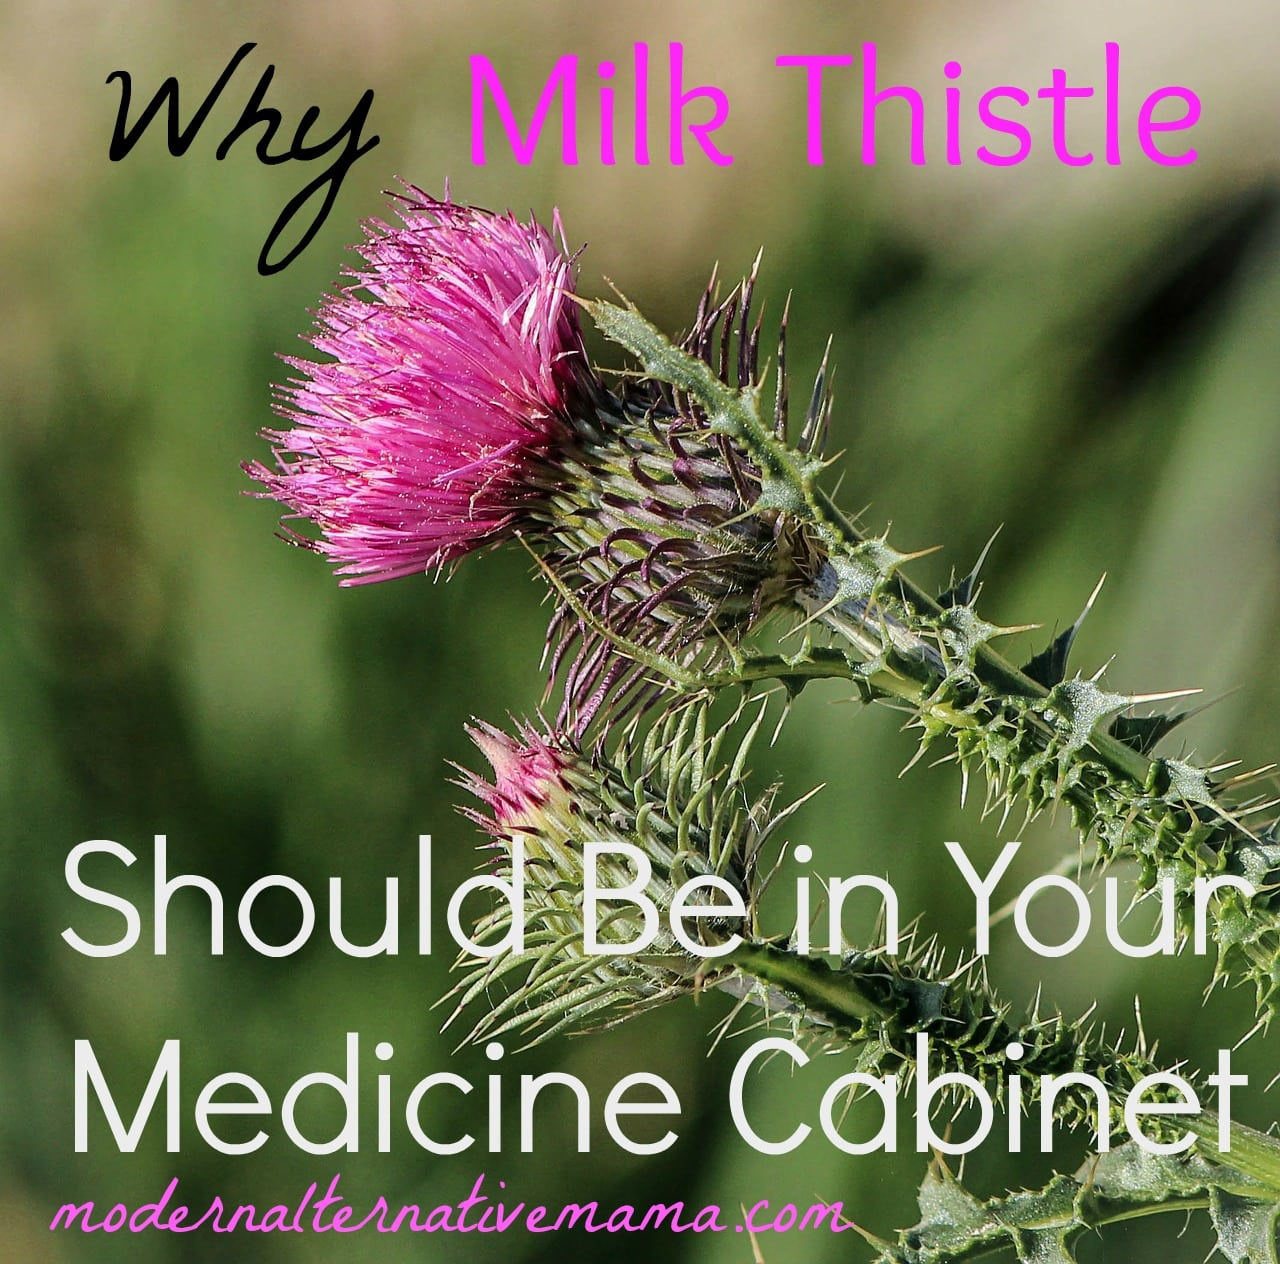 Why Milk Thistle Should Be in Your Medicine Cabinet